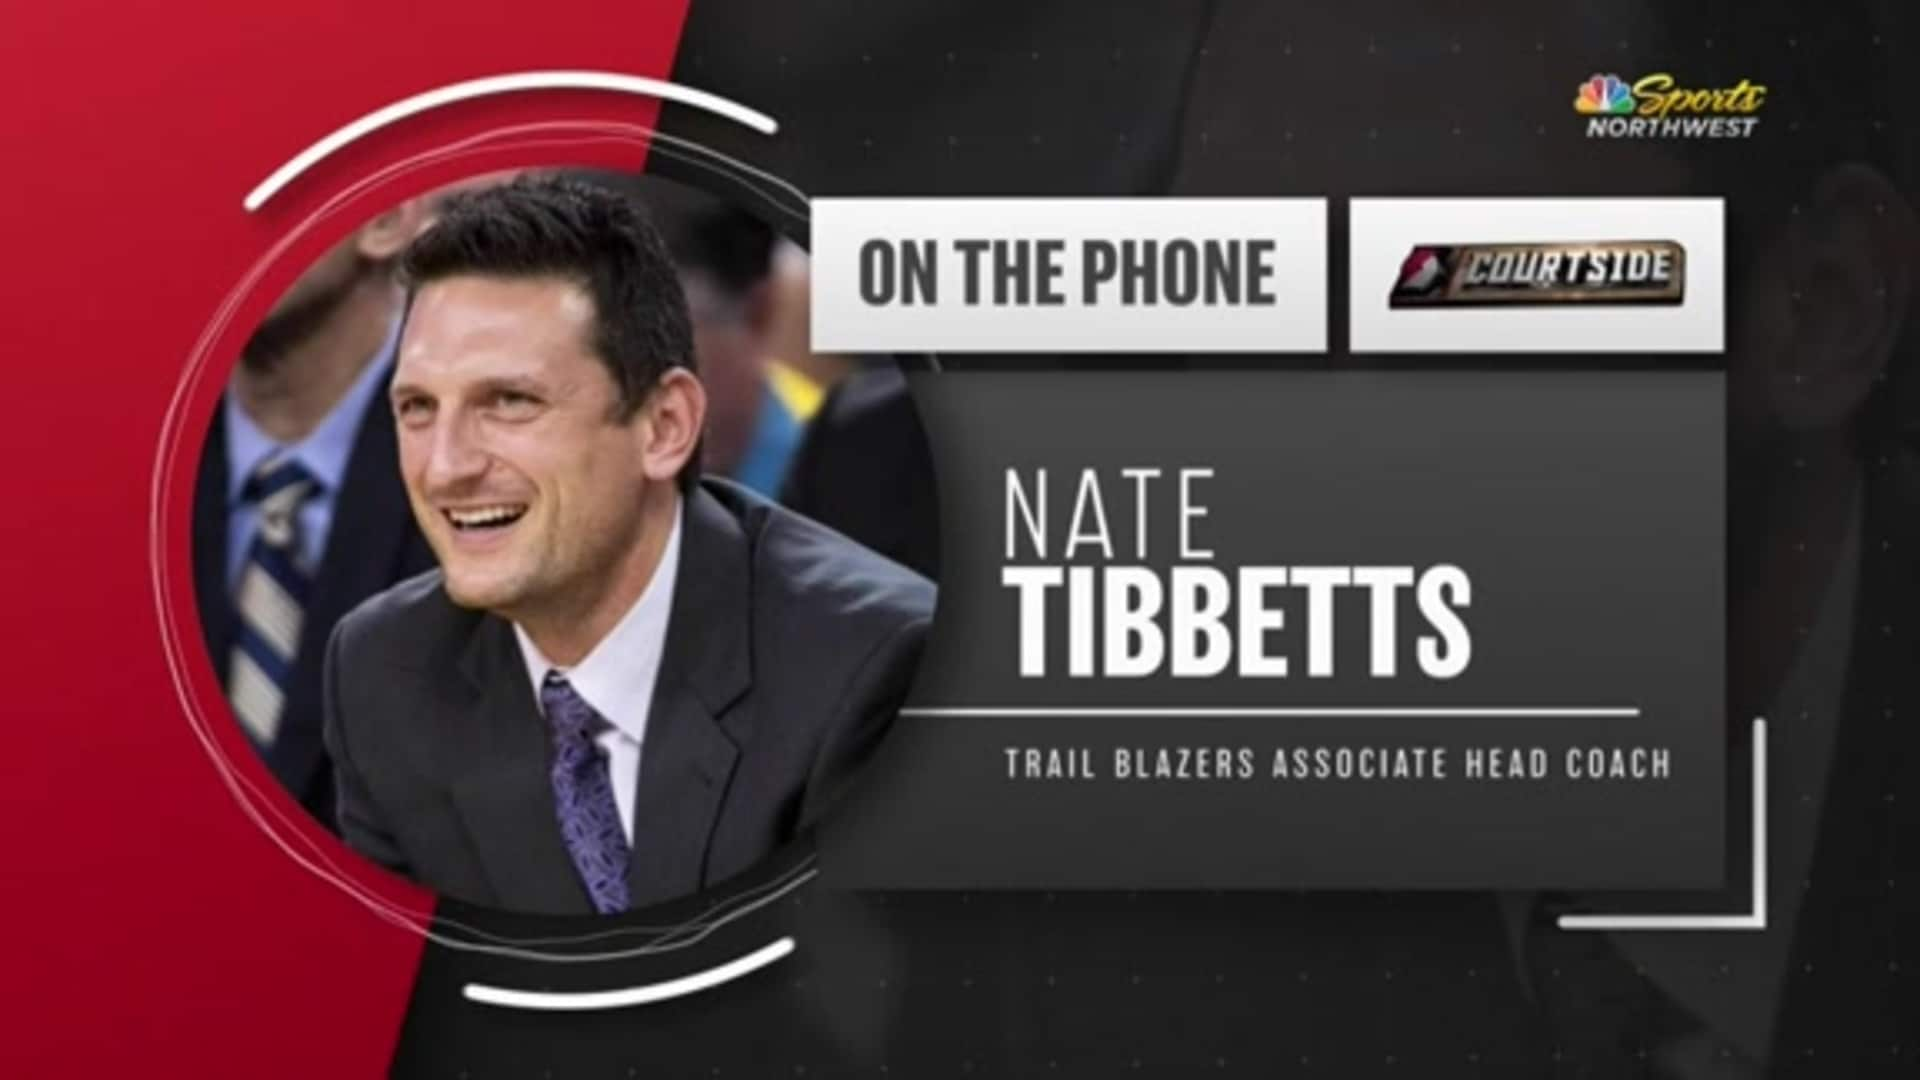 Assistant Coach Nate Tibbetts Joins Trail Blazers Courtside